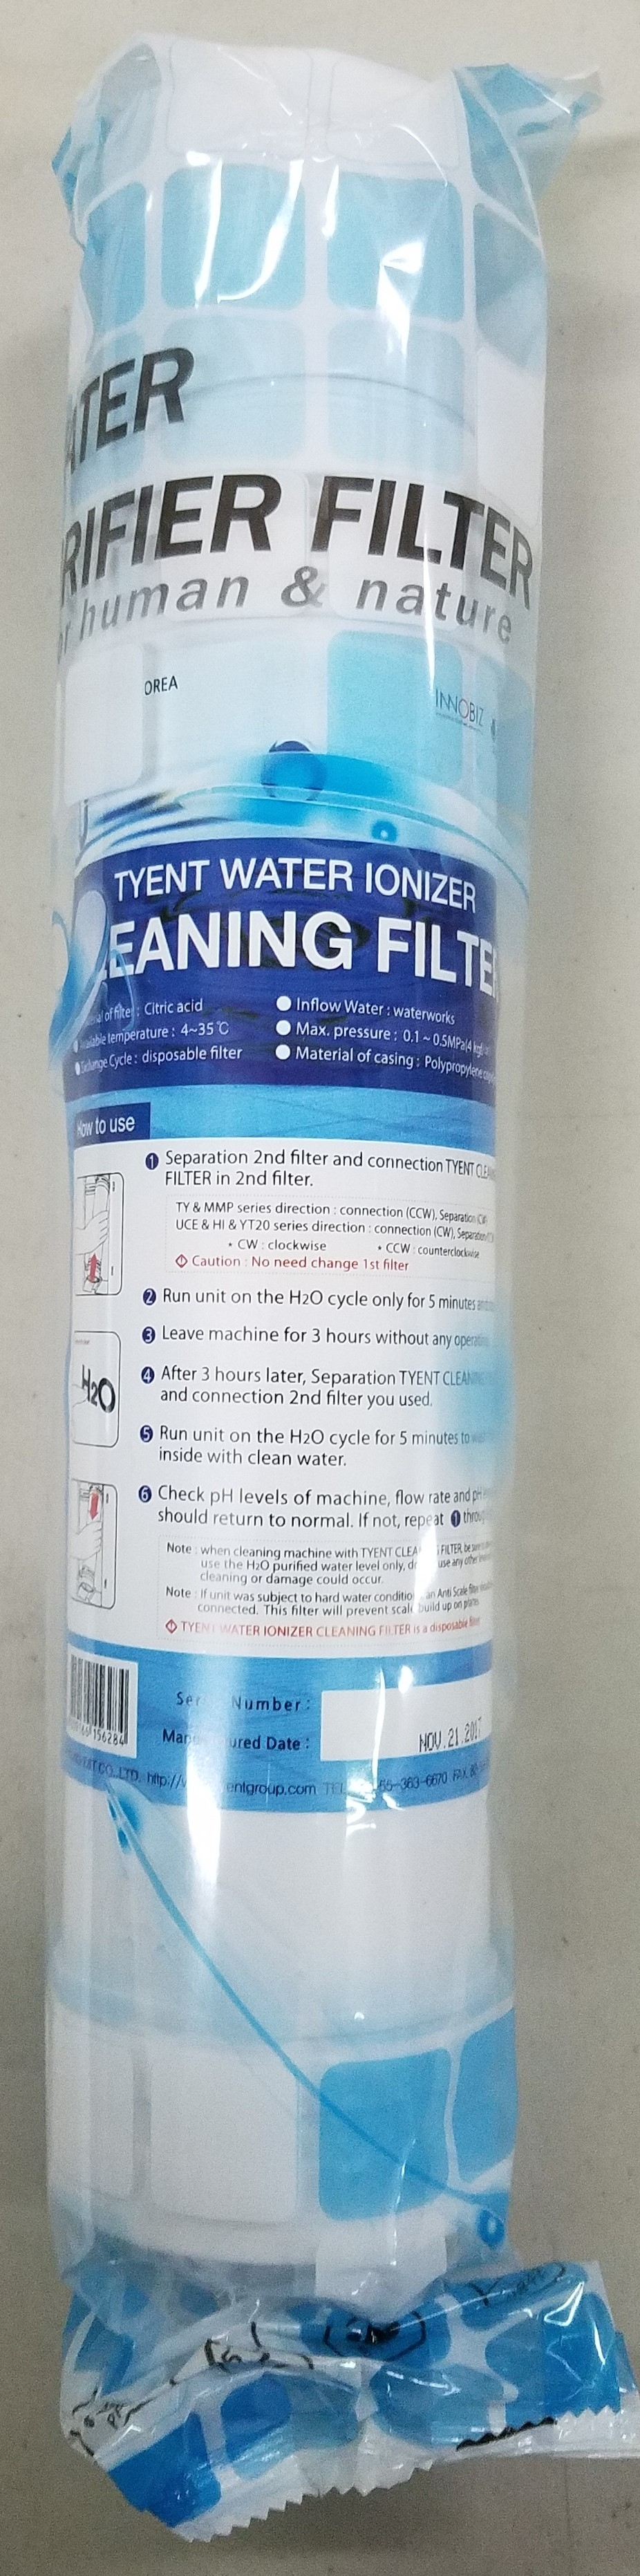 Image of ACE Series Ionizer Cleaning Filter